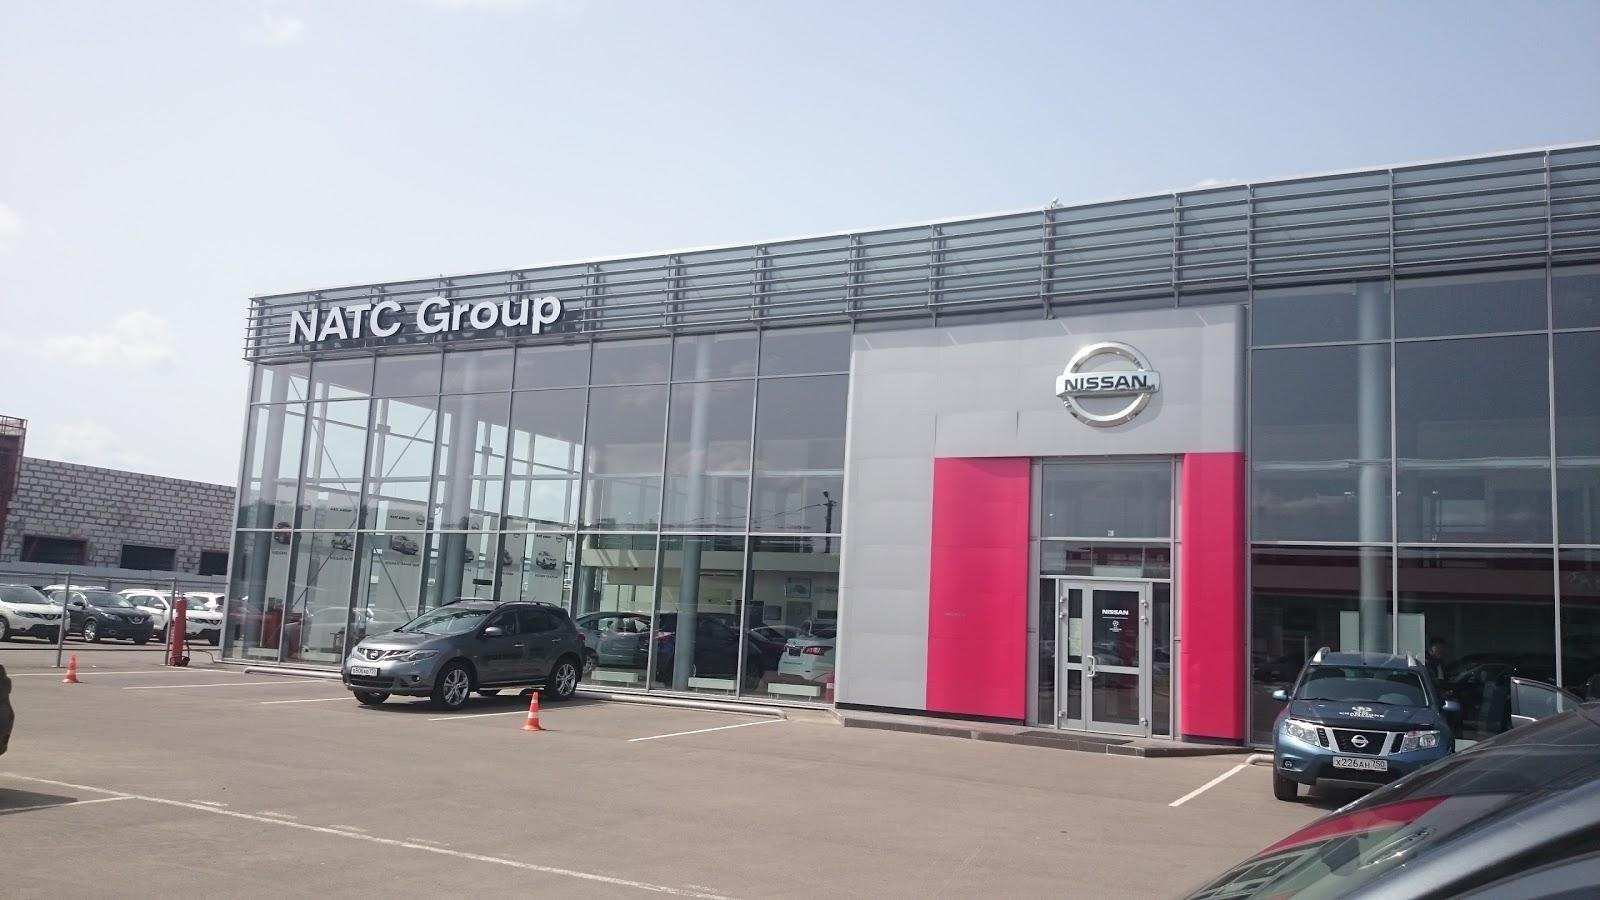 NATC Group Kia, KIA